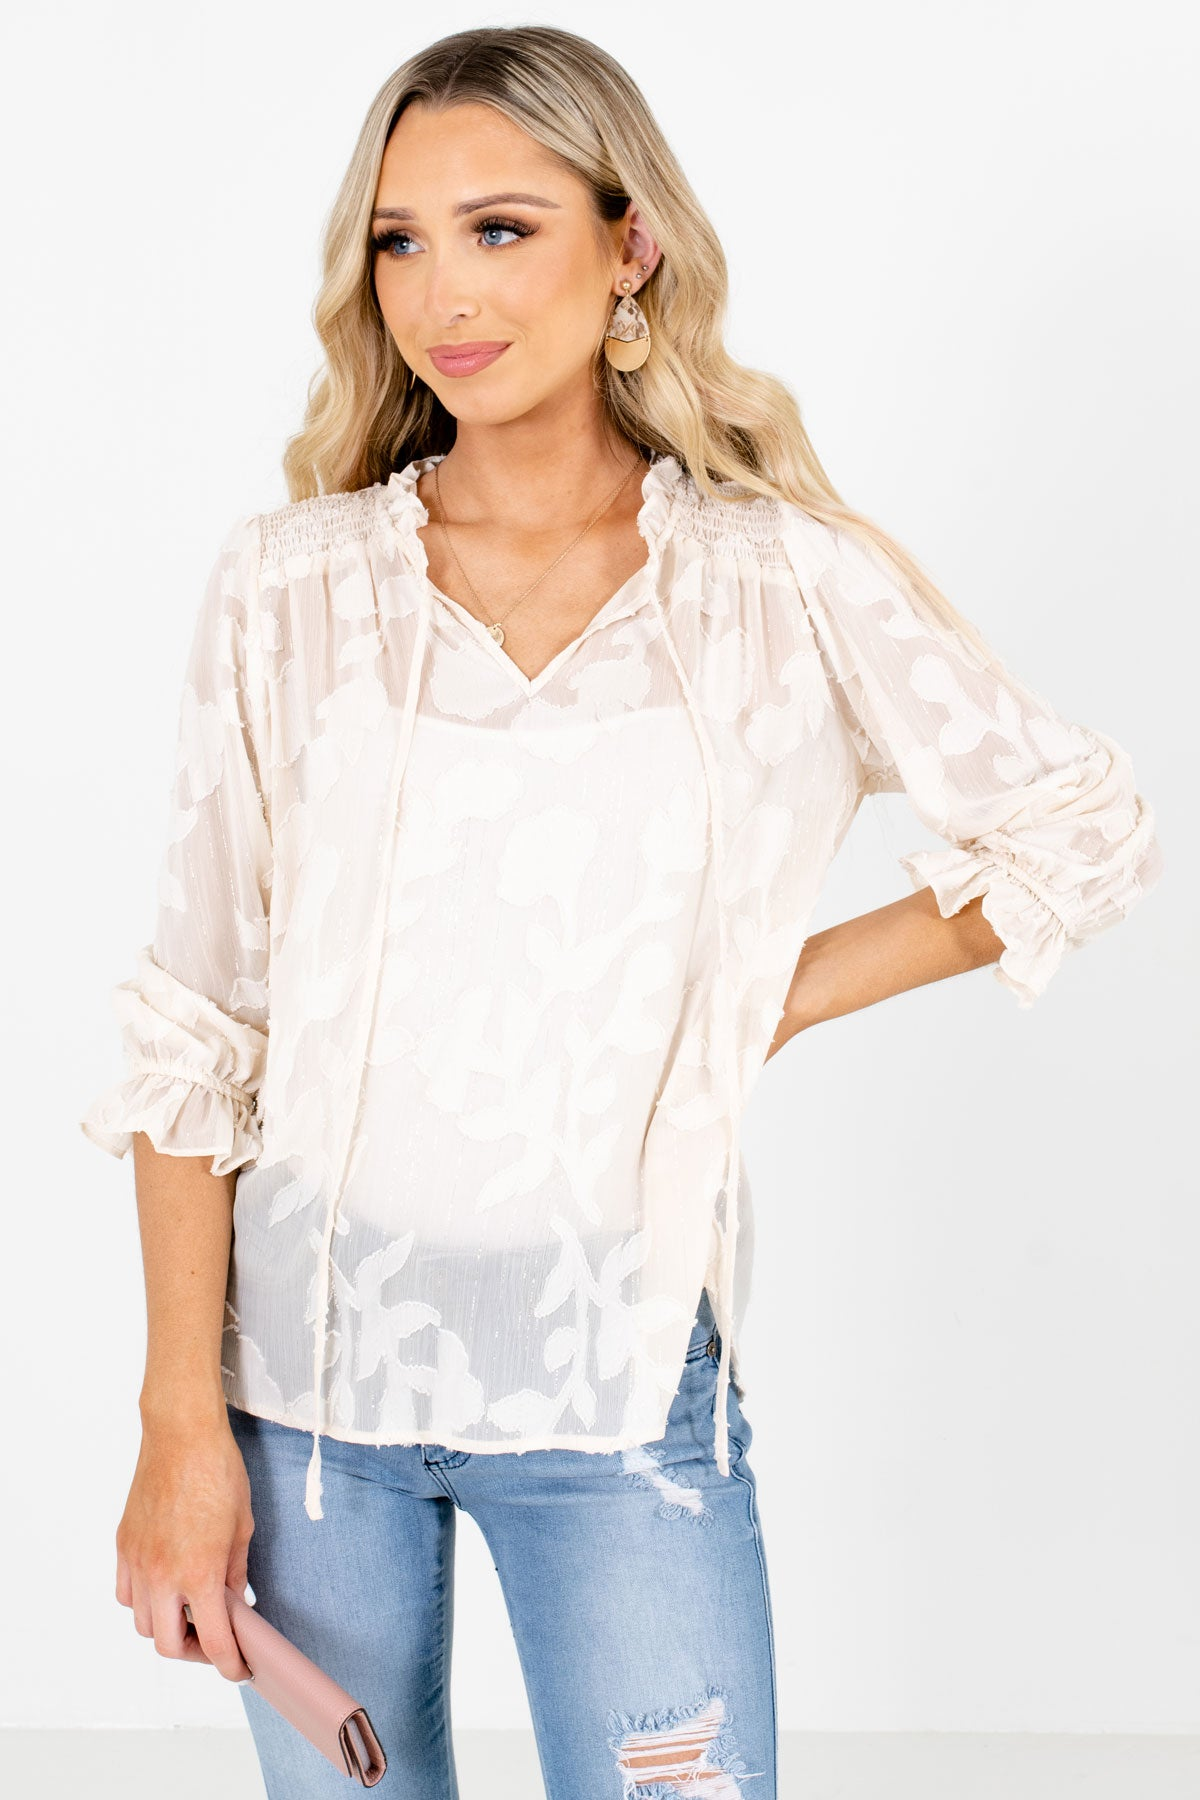 Ivory Leaf Texture Patterned Boutique Blouses for Women